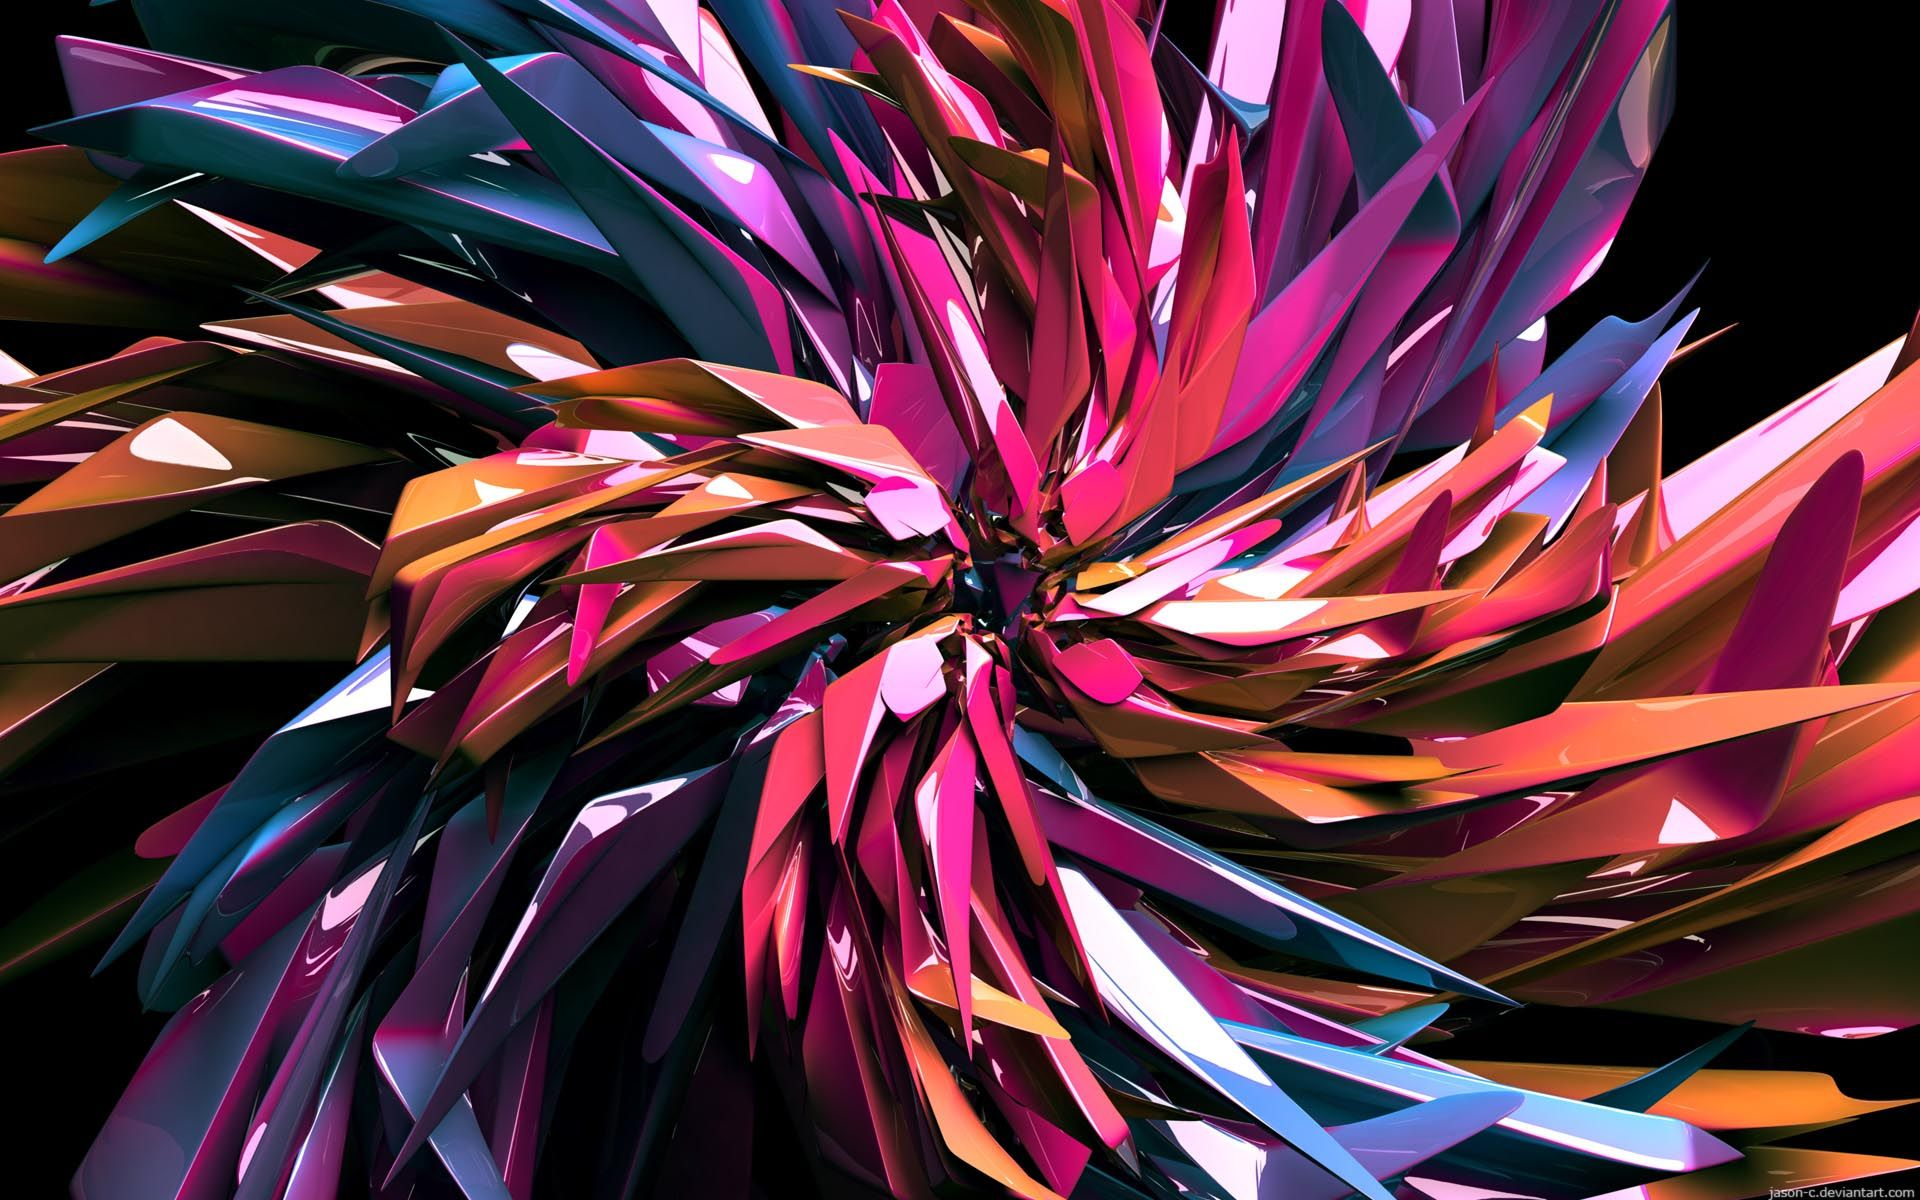 Hd Abstract Desktop Backgrounds Abstract Hd Wallpaper Abstract Wallpaper Abstract Abstract Desktop Backgrounds